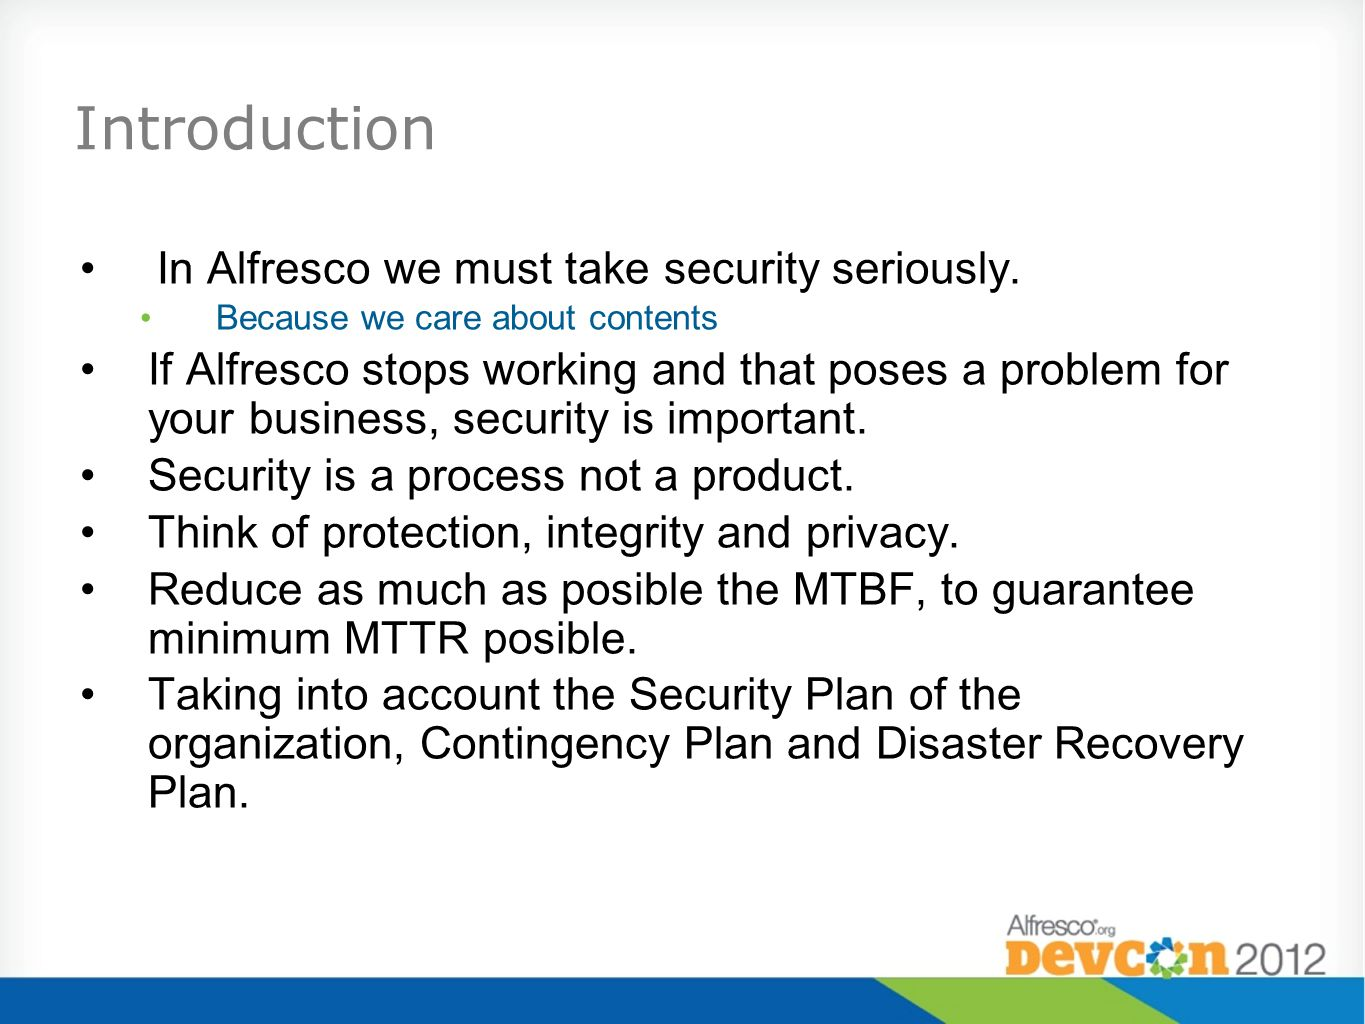 In Alfresco we must take security seriously. Because we care about contents If Alfresco stops working and that poses a problem for your business, secu